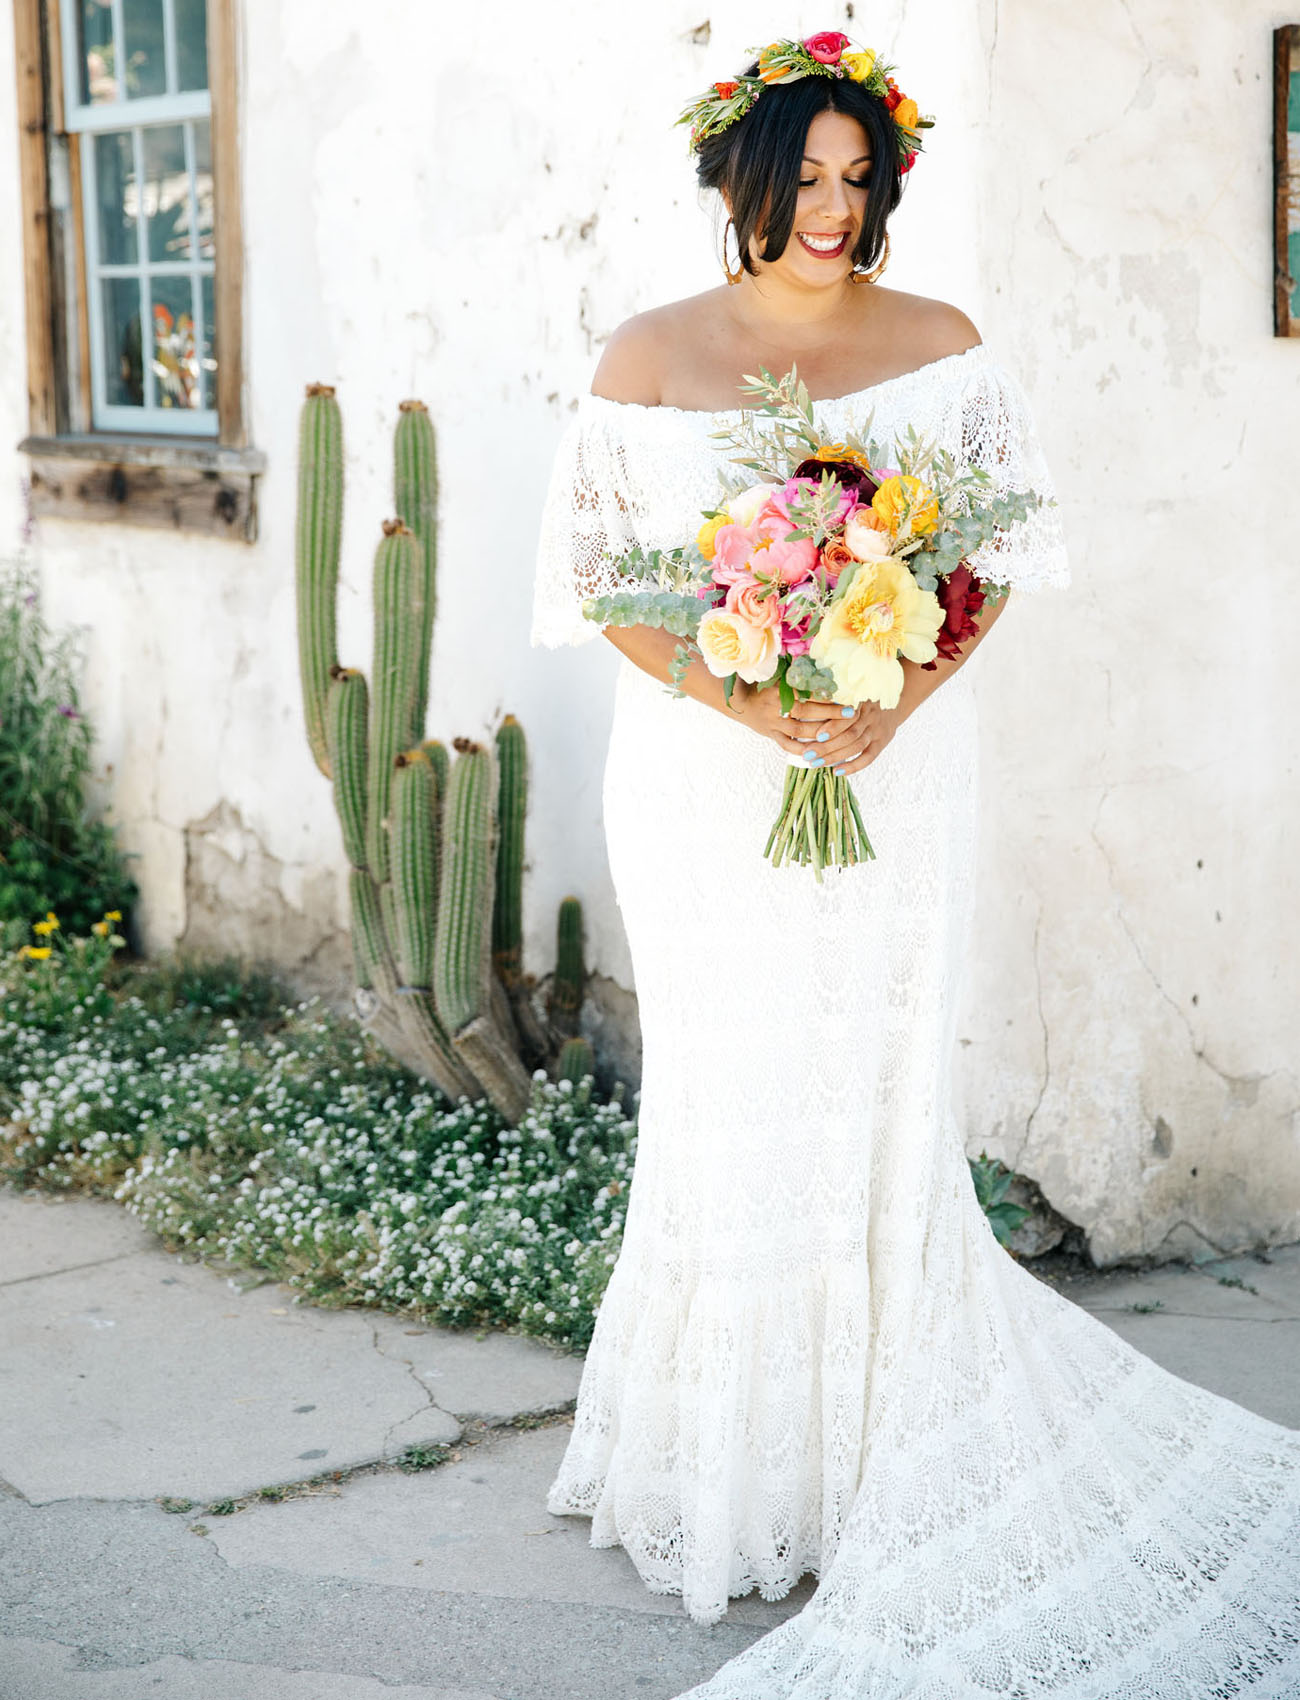 Colorful Mexico-Inspired Wedding at an Old Western Town in ...